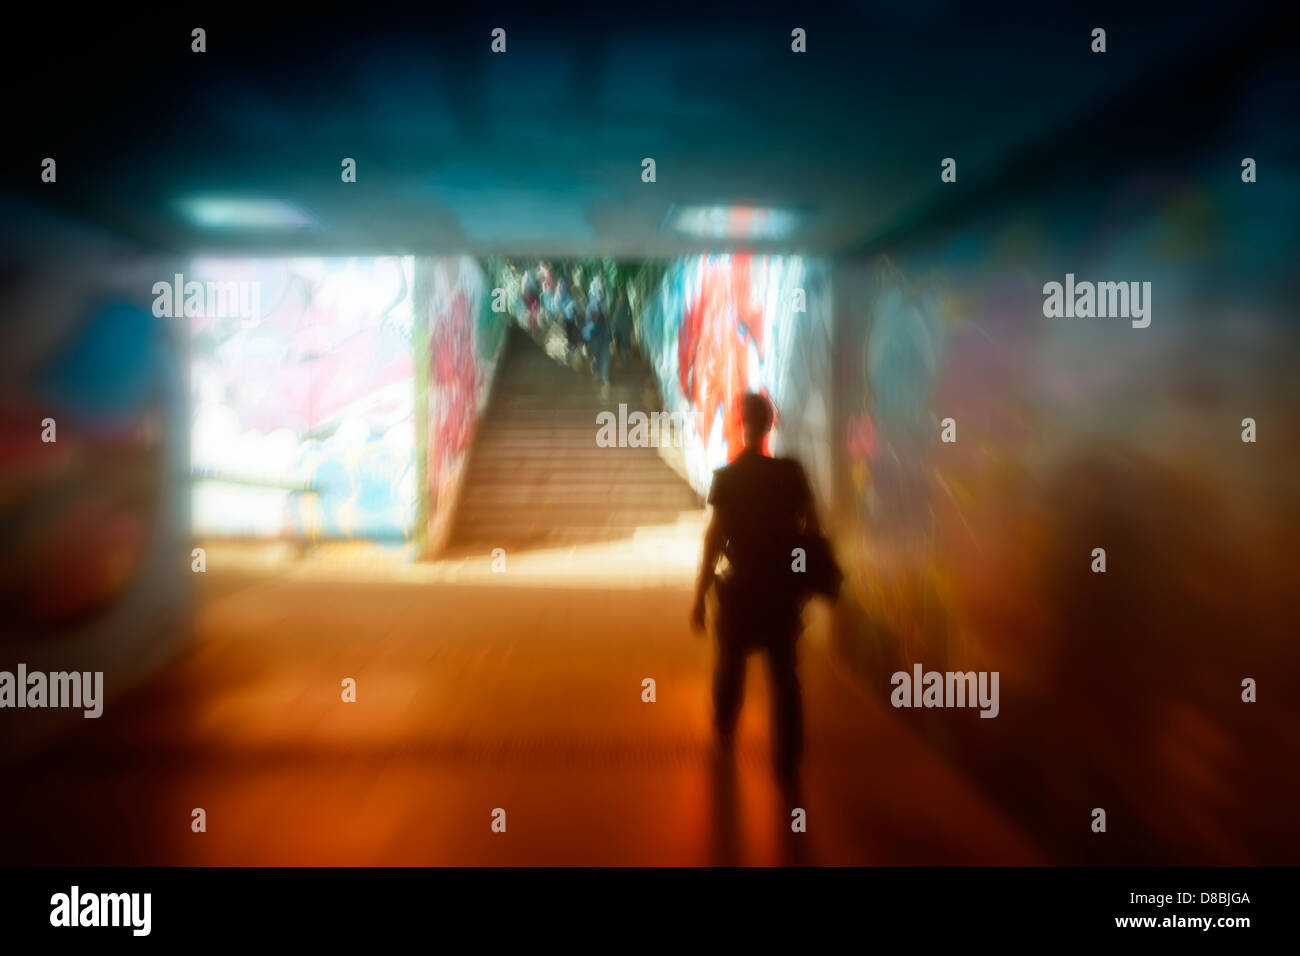 A man walking in a dark tunnel with graffiti, symbolic image for panic, Trier, Rhineland-Palatinate, Germany, Europe - Stock Image